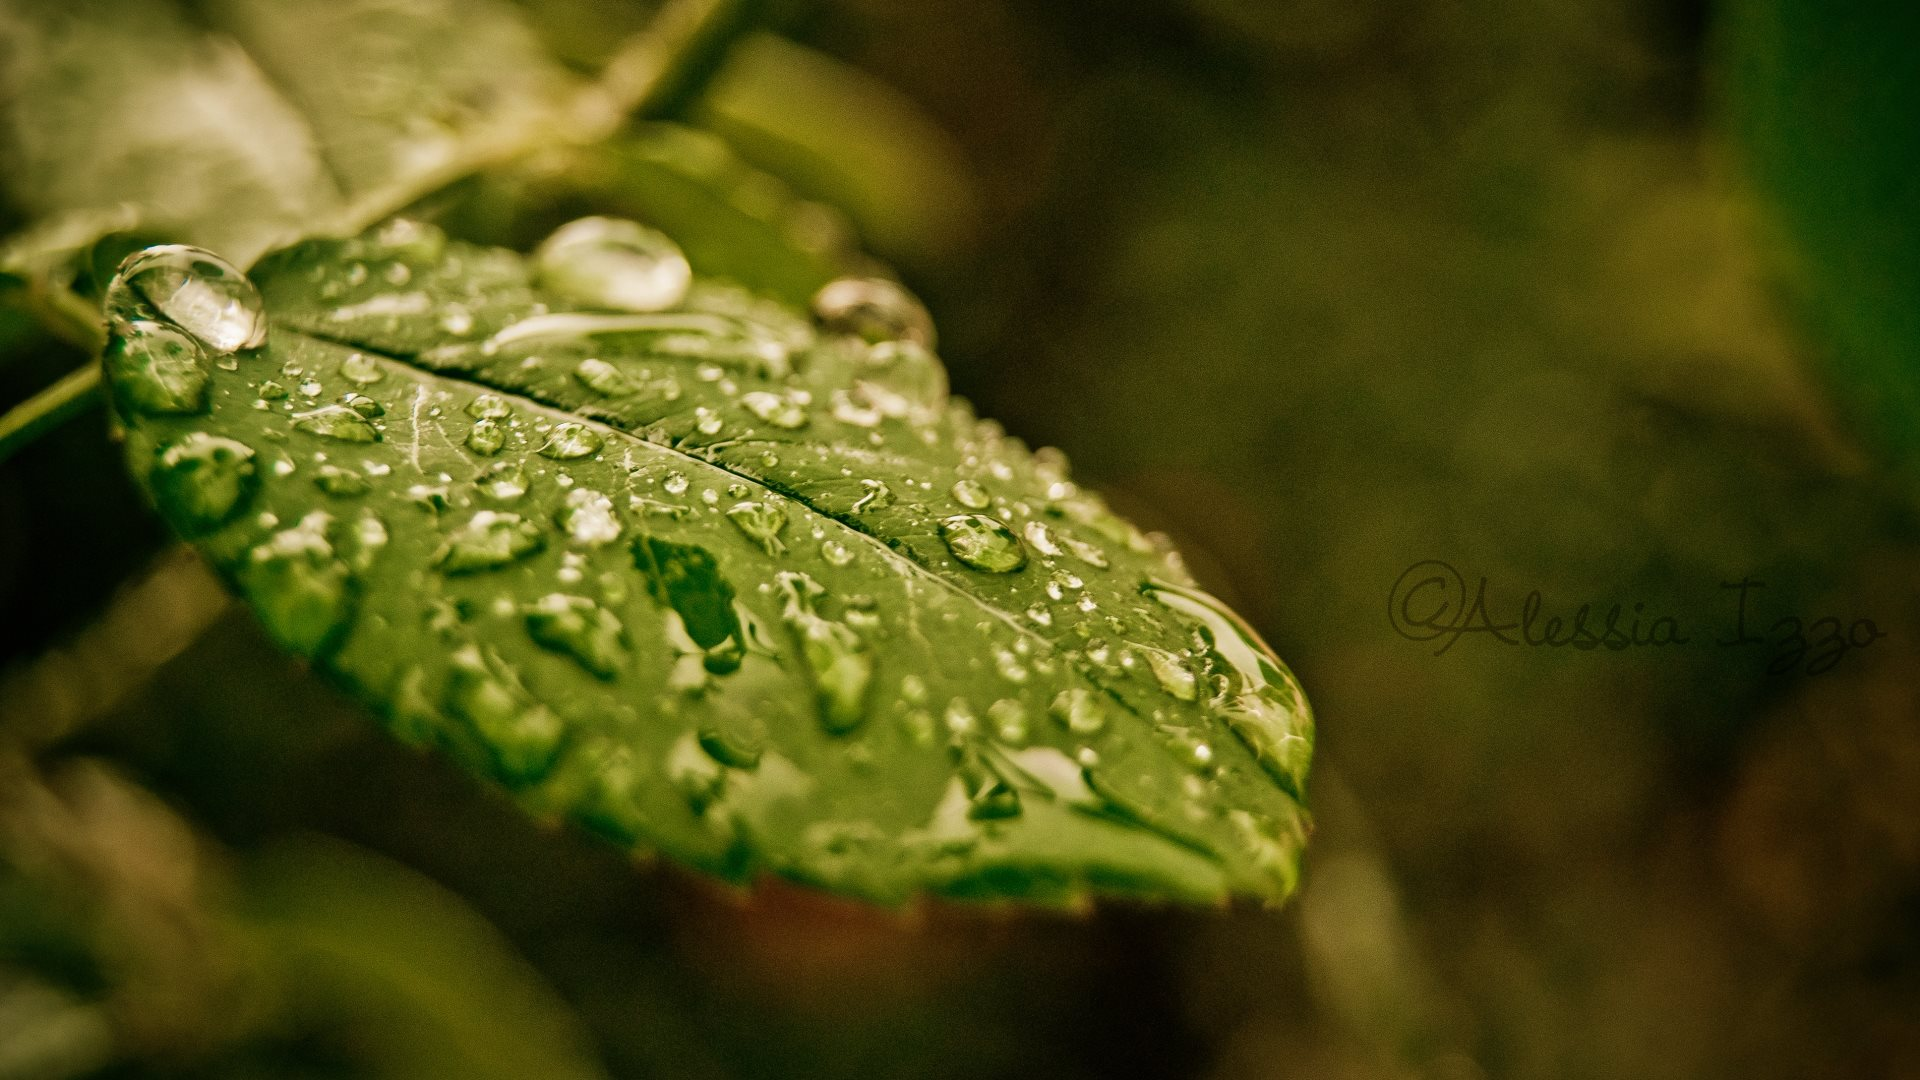 droplets on leaves 4k - photo #3